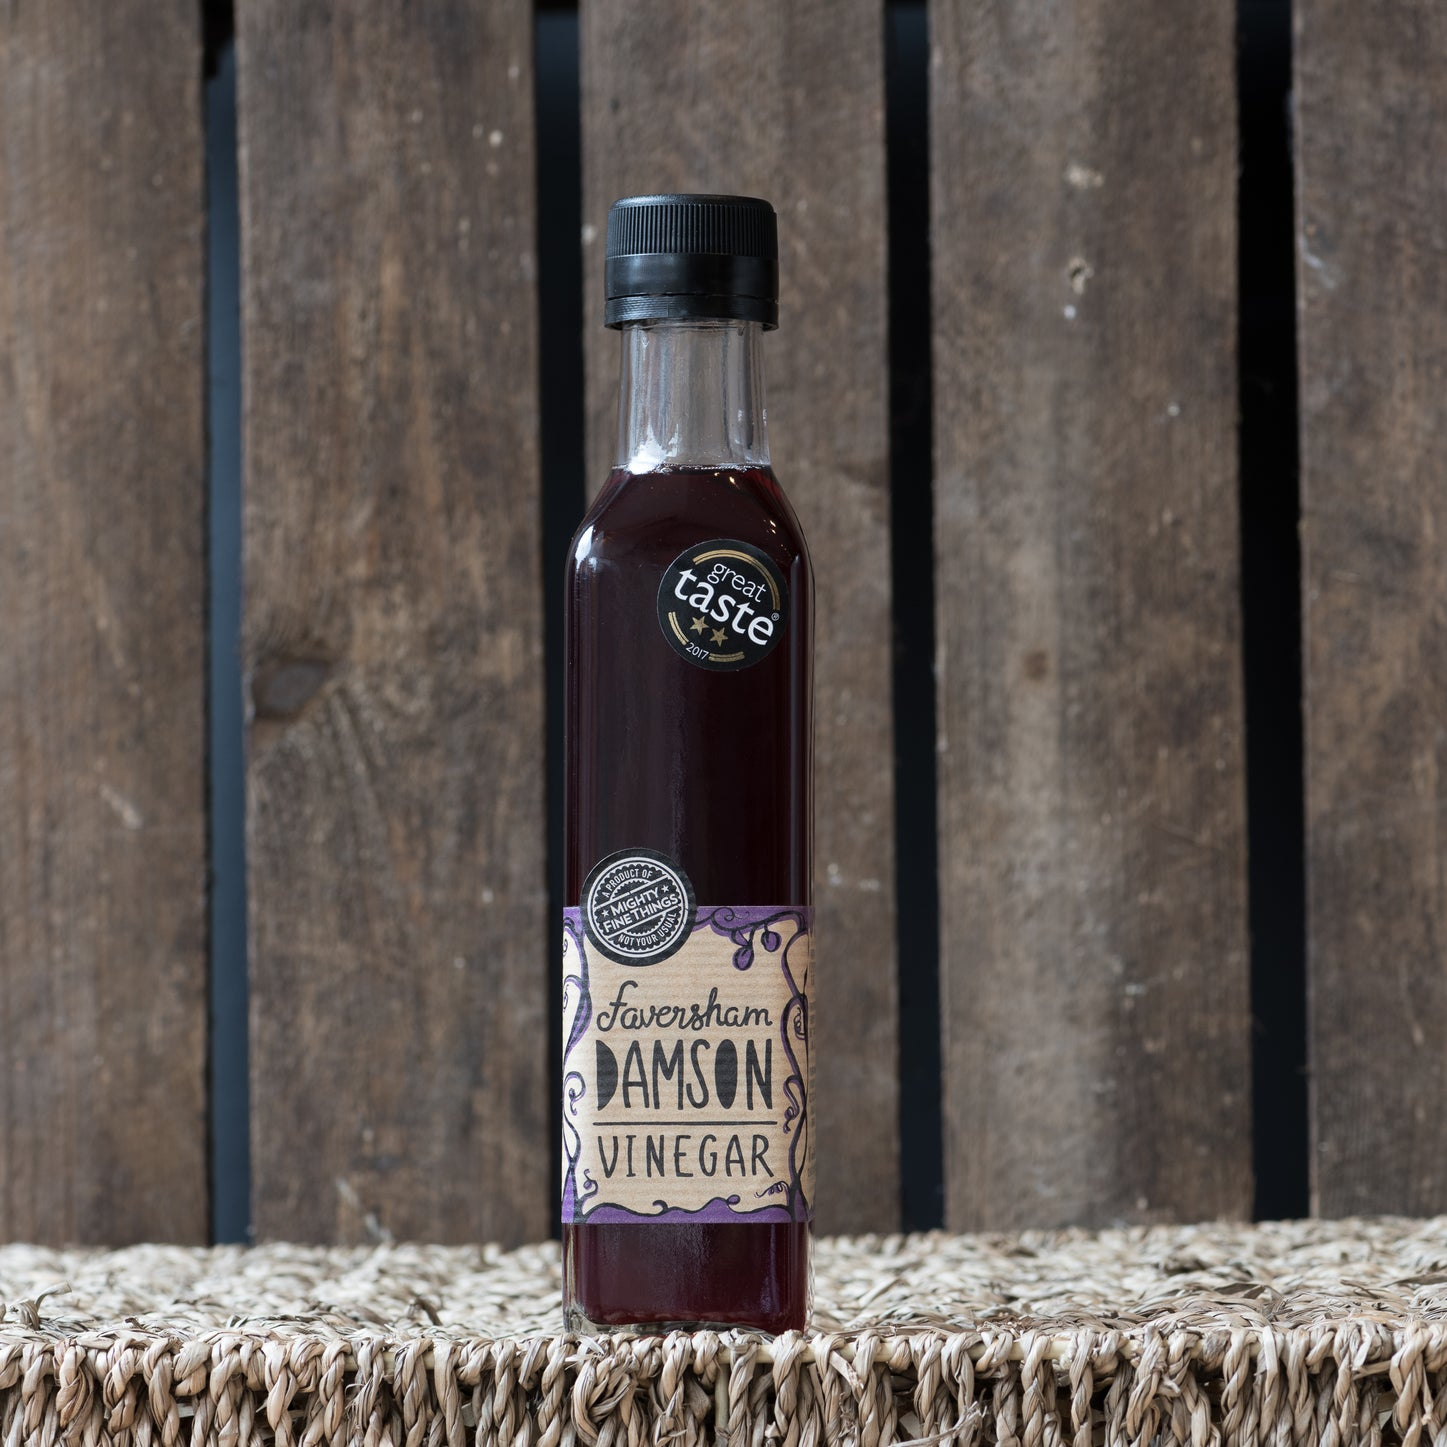 Damson Vinegar